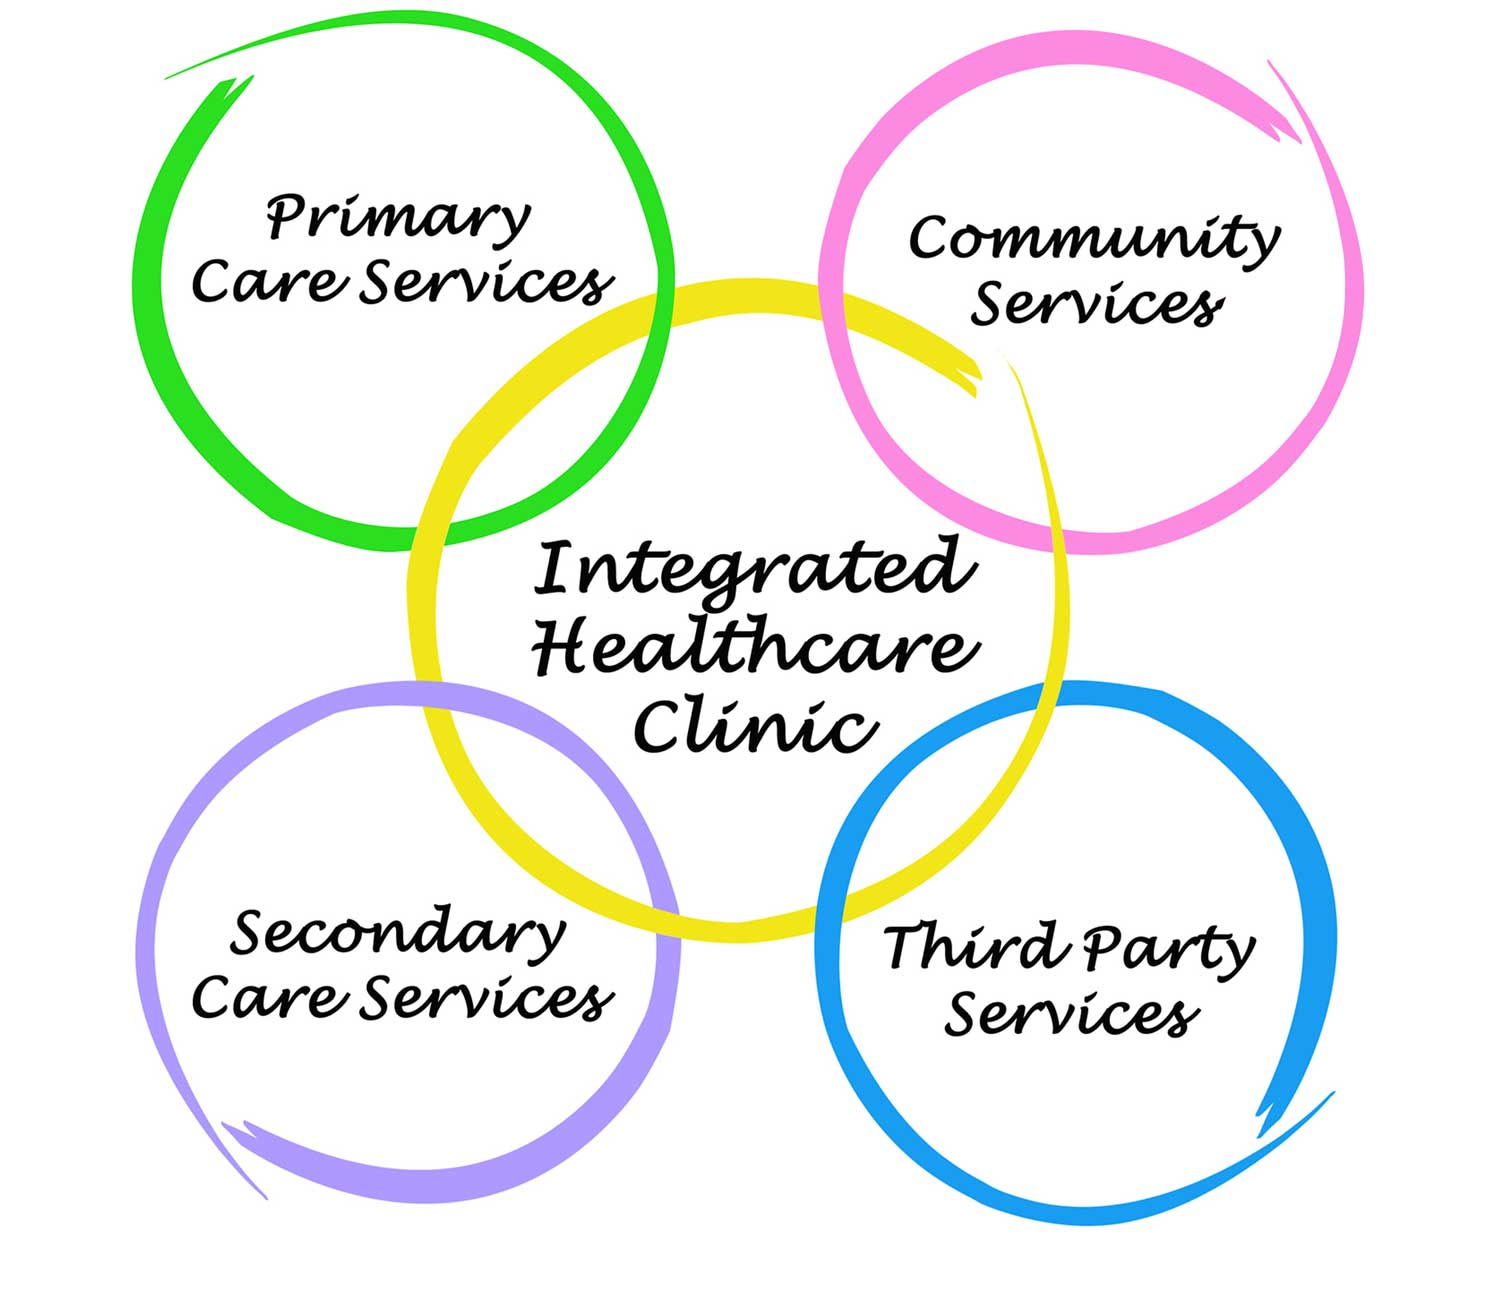 summit exchange community healthcare 2 circles